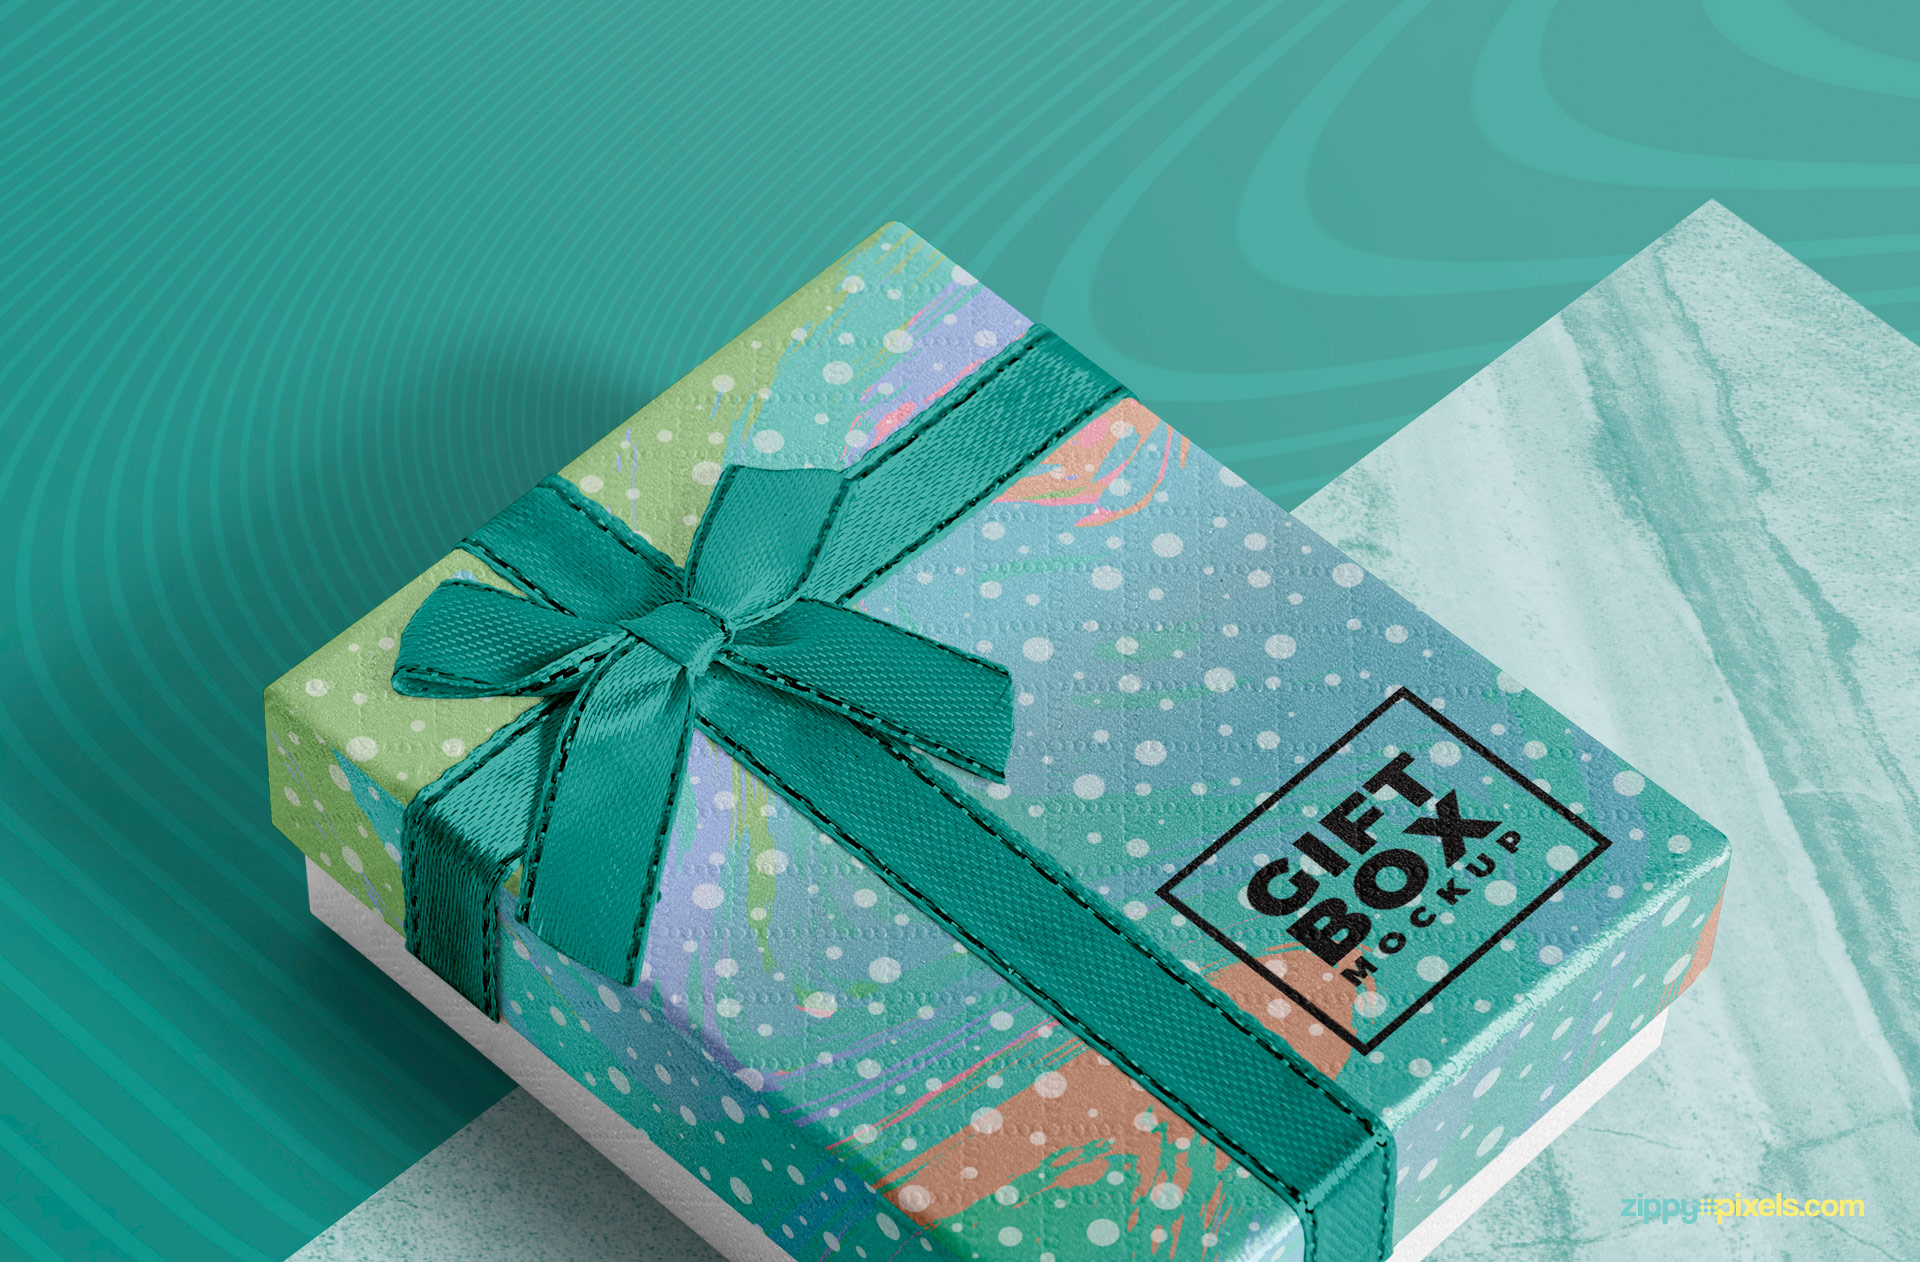 This gift box mockup comes with a customizable ribbon.